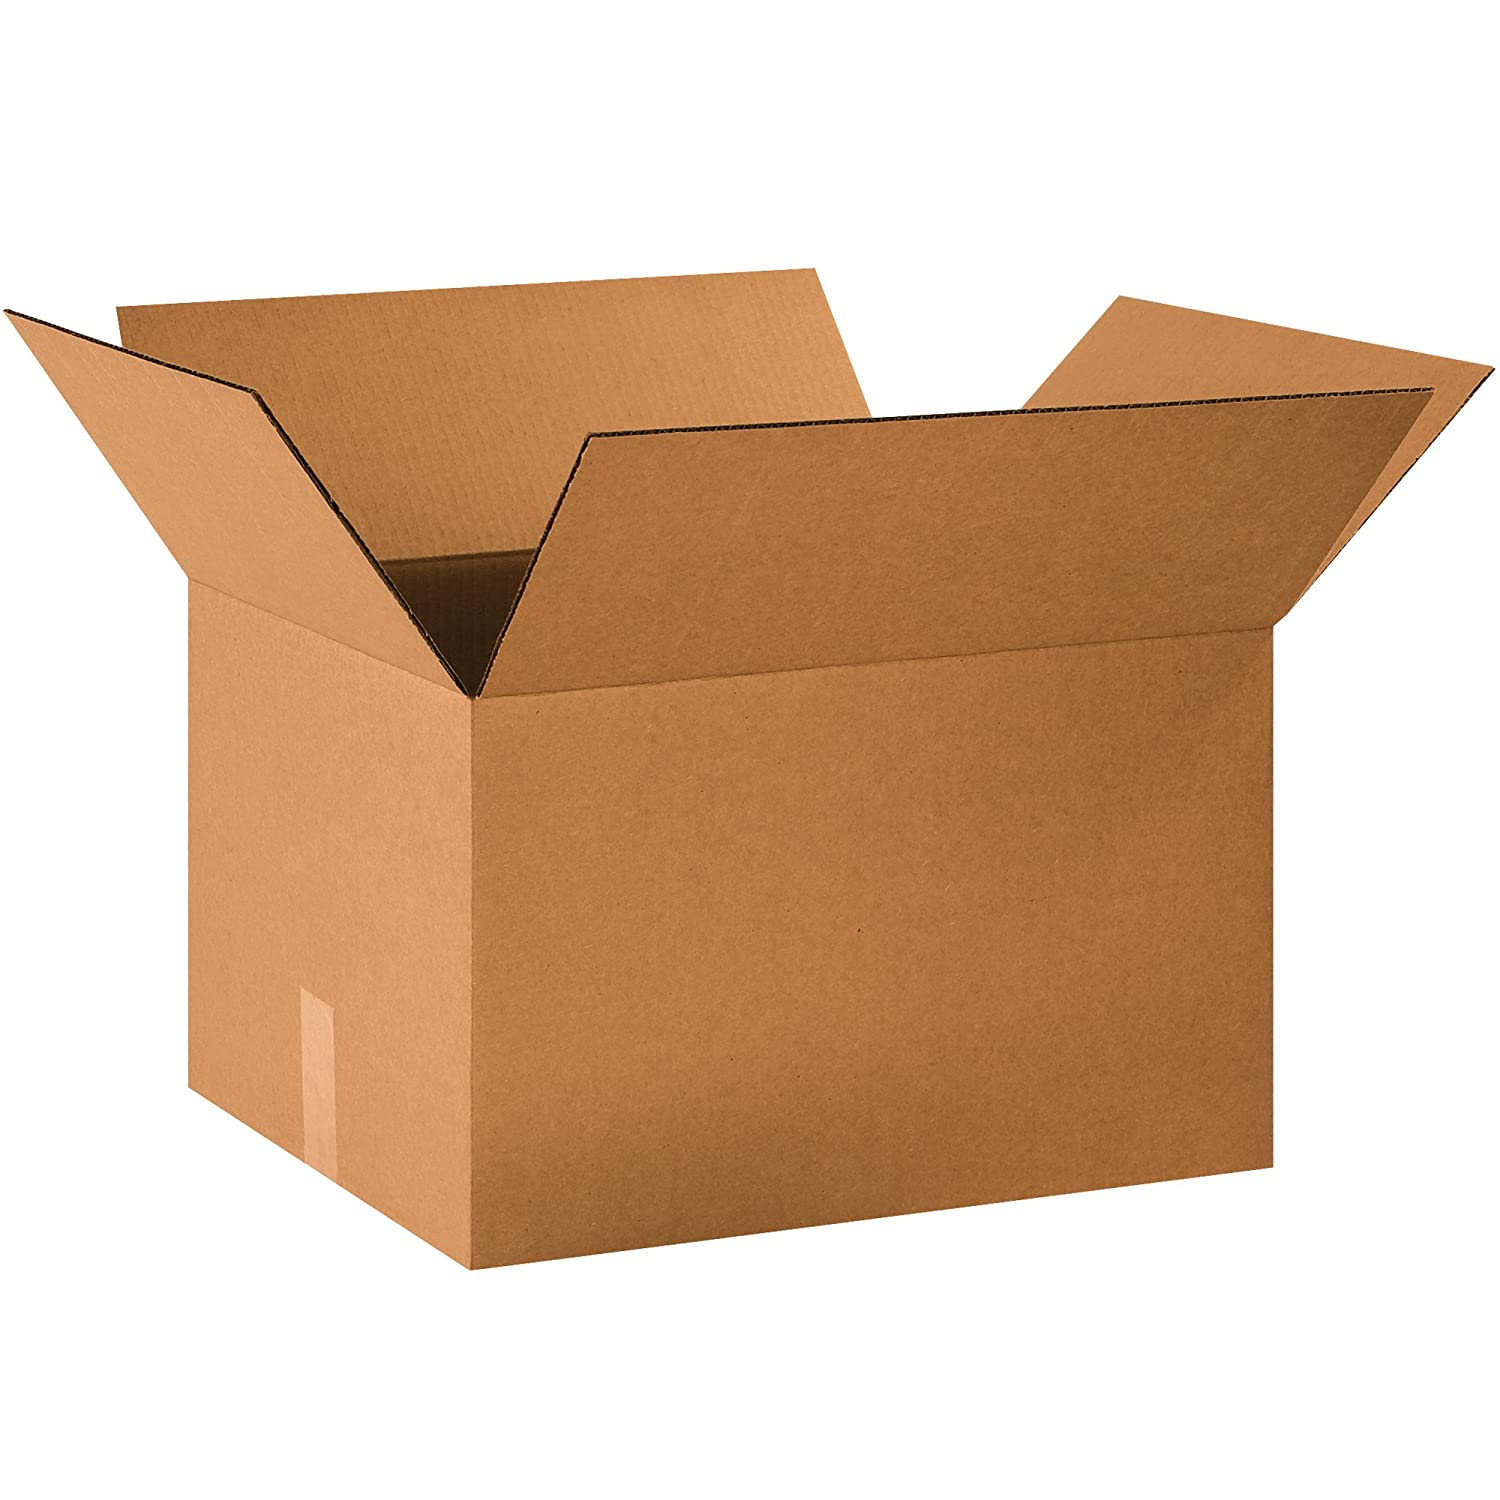 25-16 x 12 x 6 Corrugated Shipping Boxes Packing Storage Cartons Cardboard Box